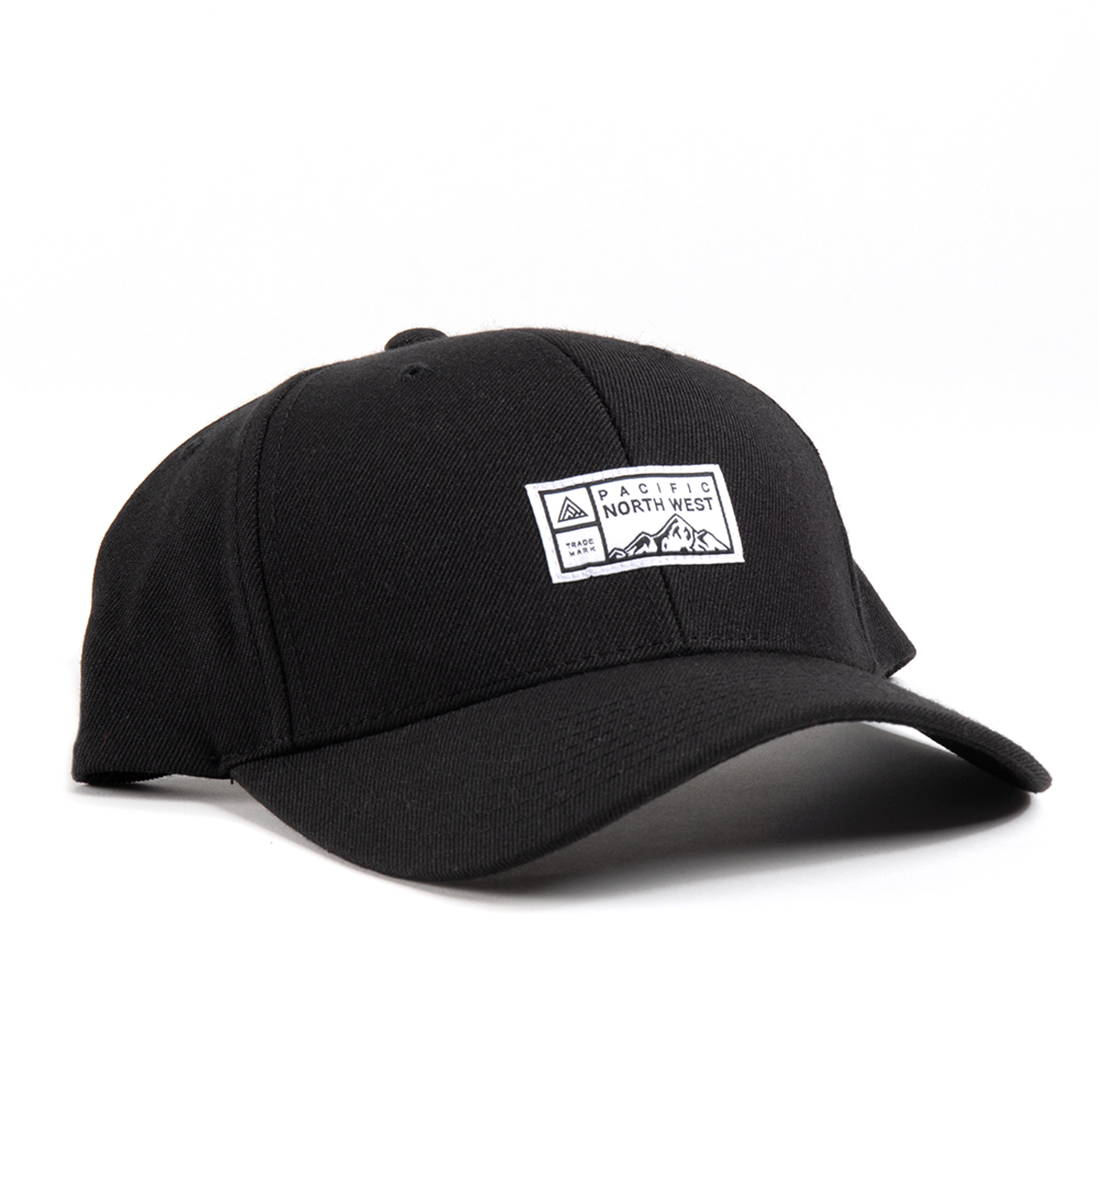 The Great PNW Lewis Hat